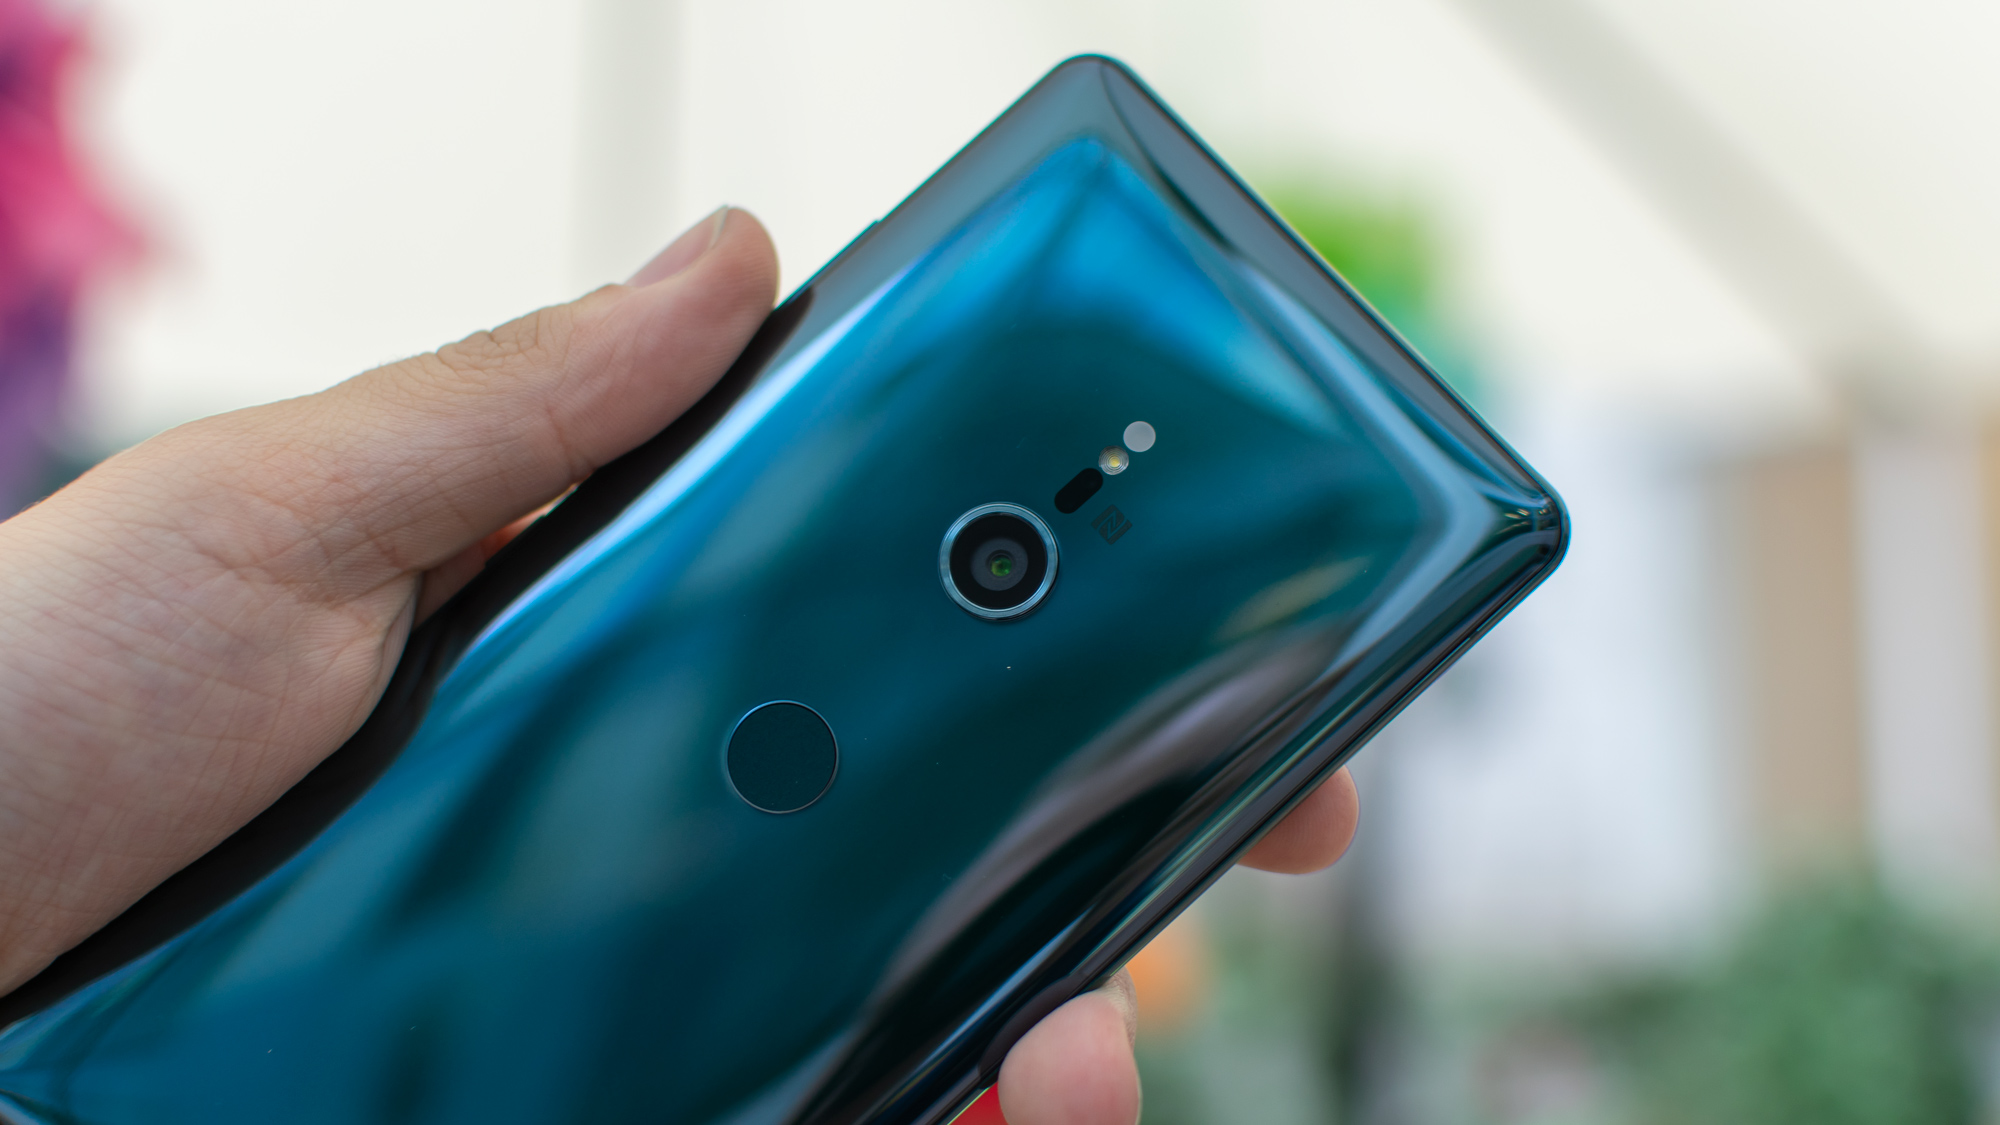 Sony unveils Xperia XZ3 with a curved OLED display, Android 9 Pie